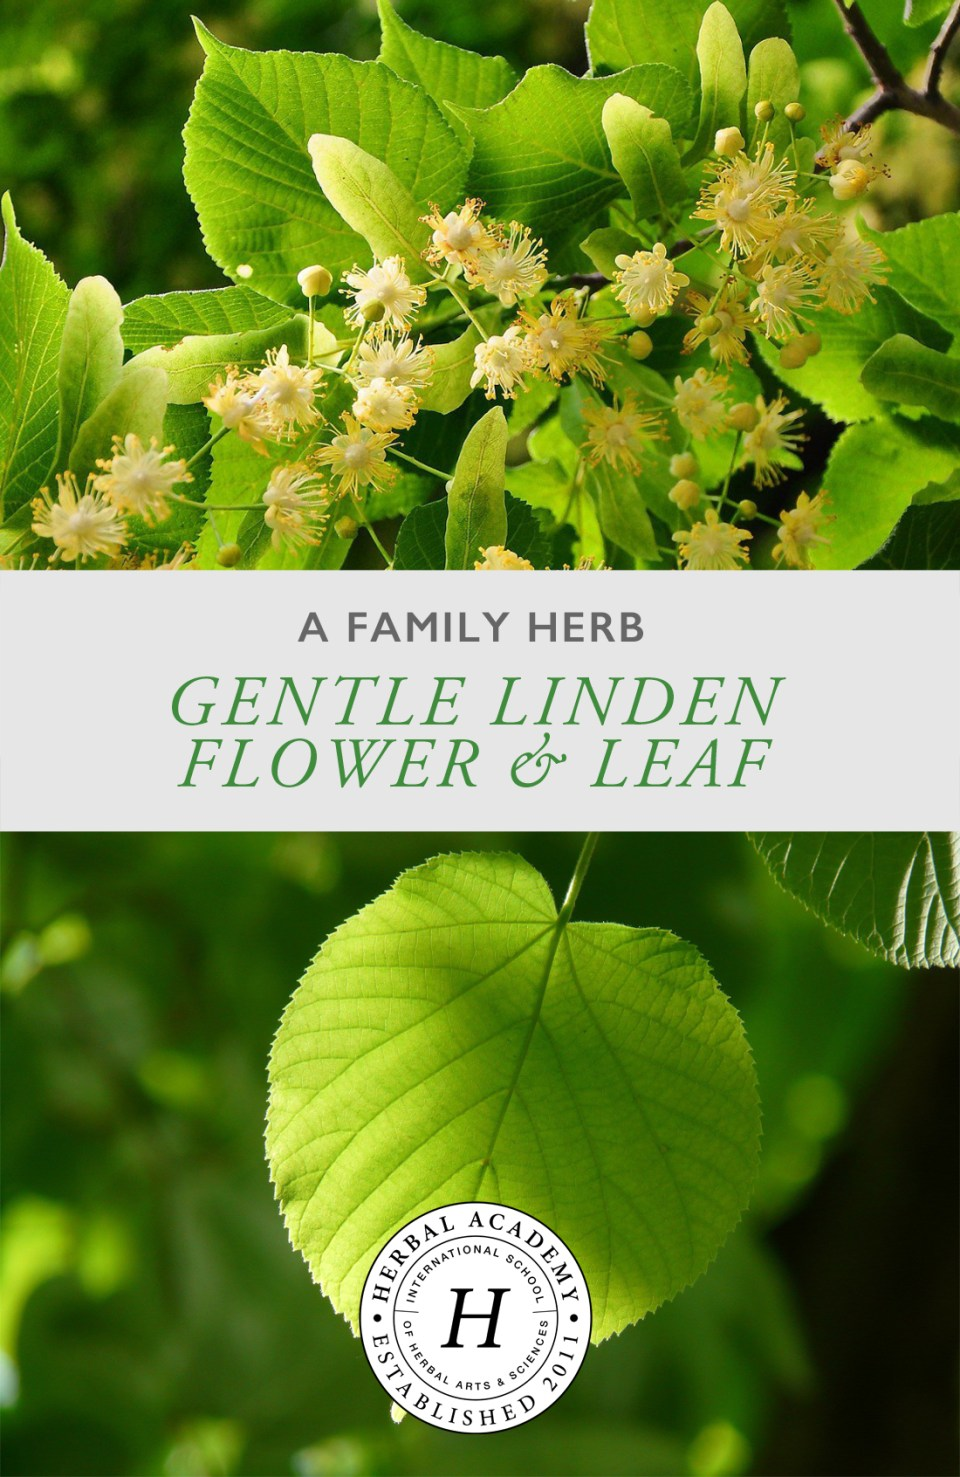 A Family Herb: Gentle Linden Flower and Leaf | Herbal Academy | Gentle linden flower and leaf provides a cooling calm for every member of the family. Learn about the many benefits of this is beloved herb!